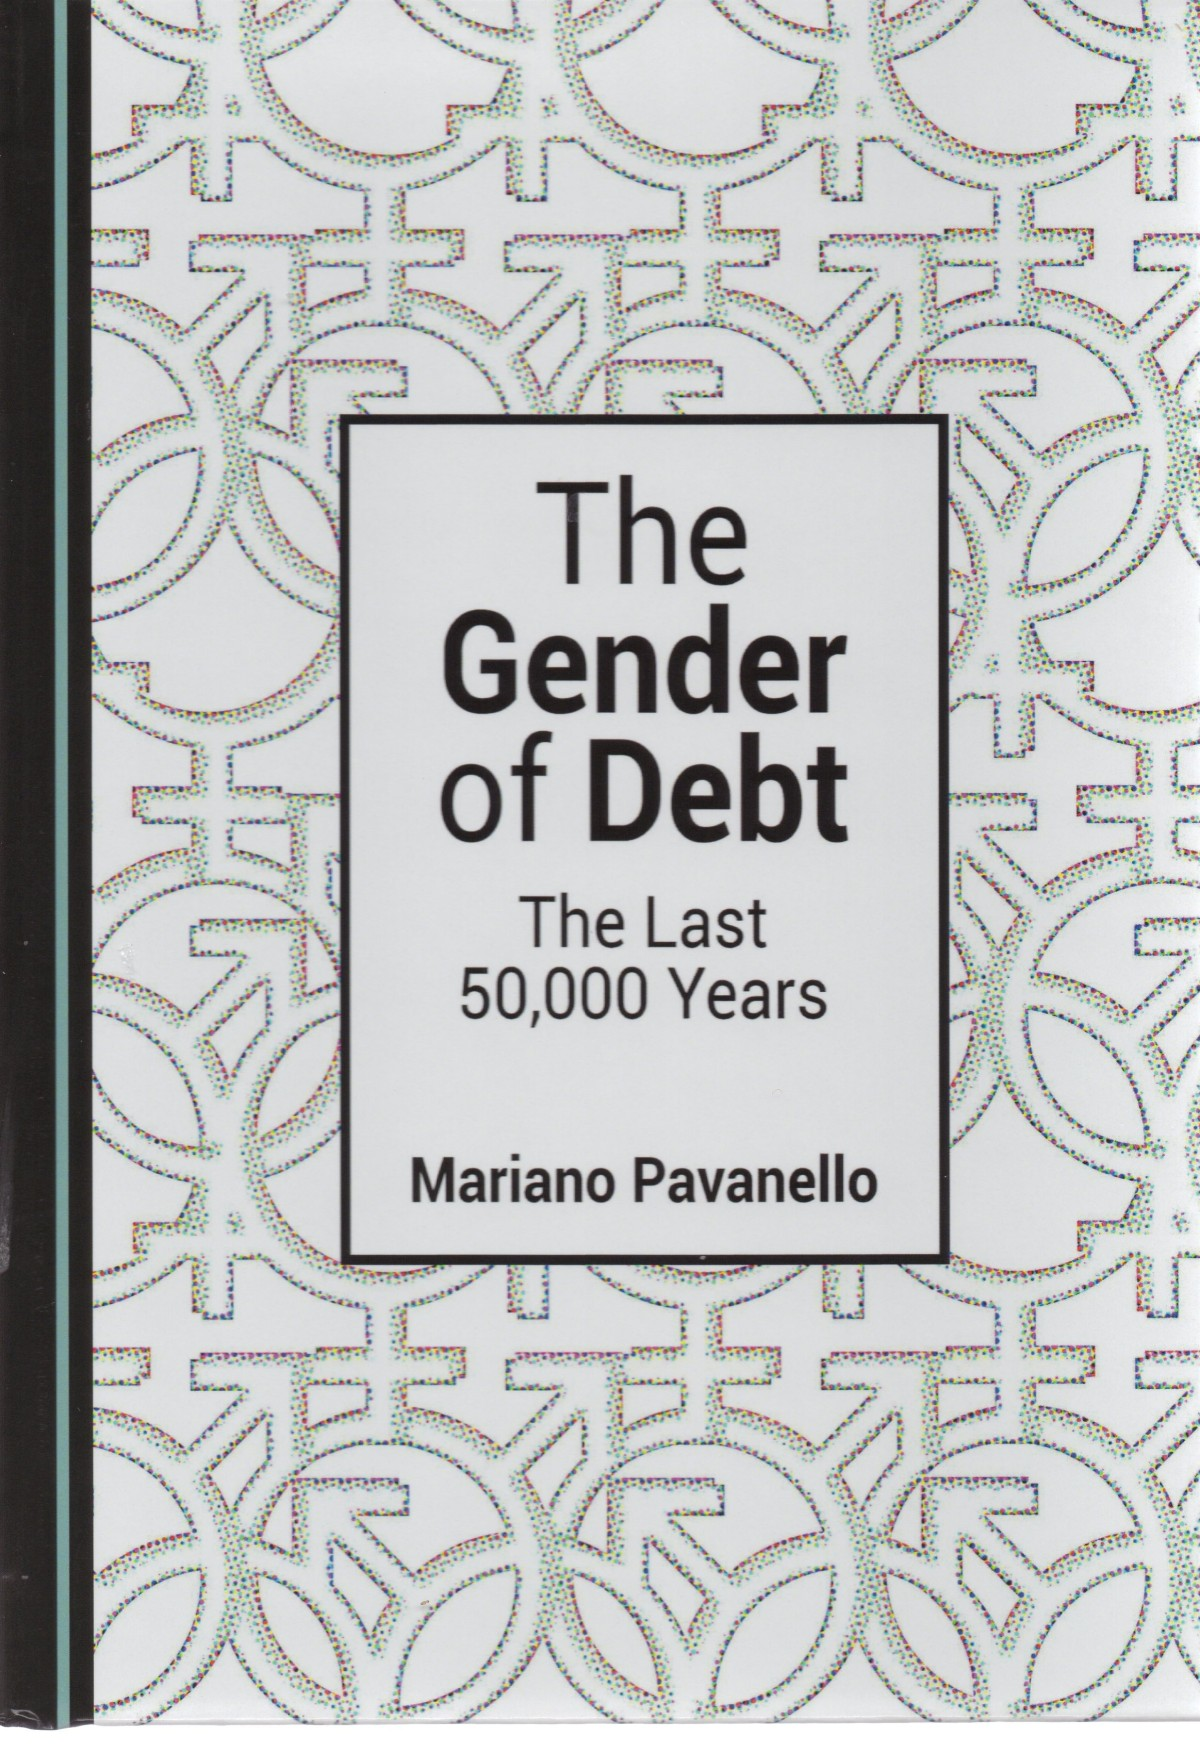 The Gender of Debt: The Last 50,000 Years by Mariano Pavanello Review